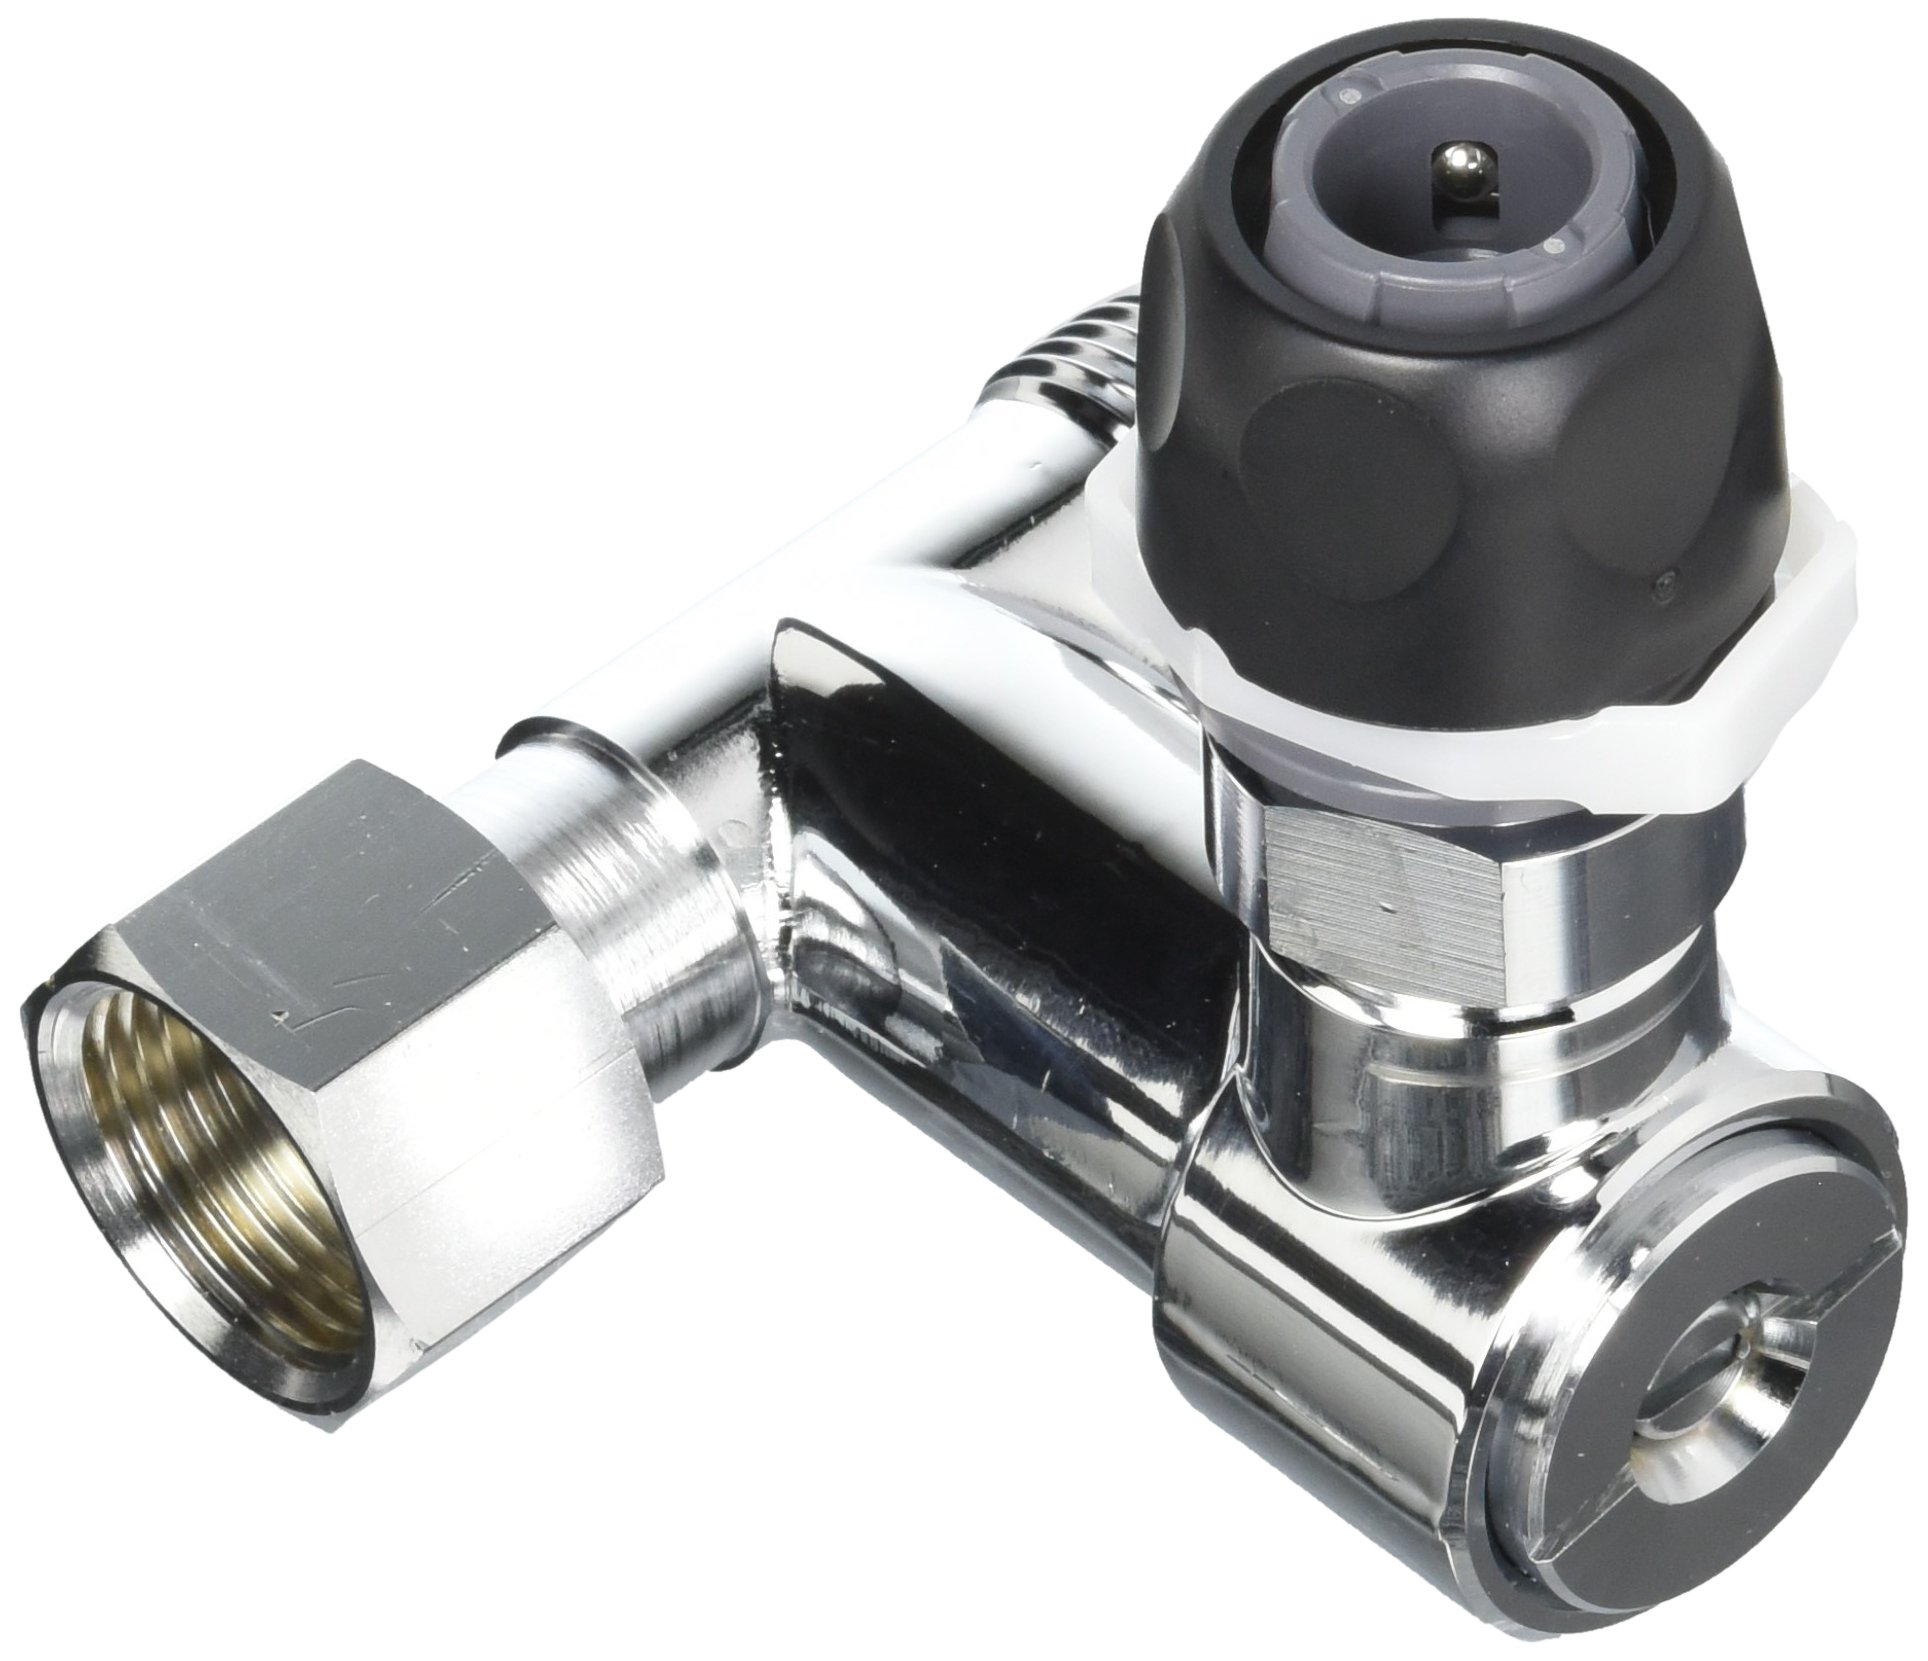 Toto THU661 Quick Connect Junction Valve for C100, C110, E200, S300, S400 Washlet